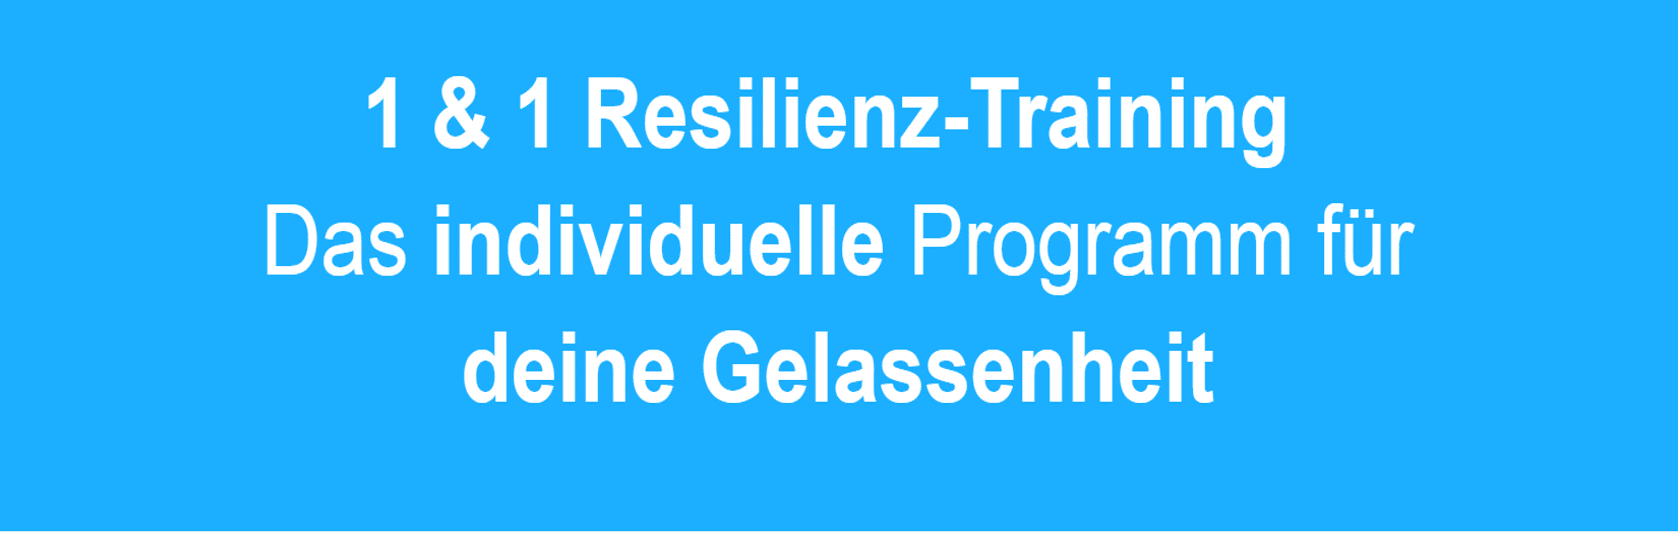 reilienztraining header